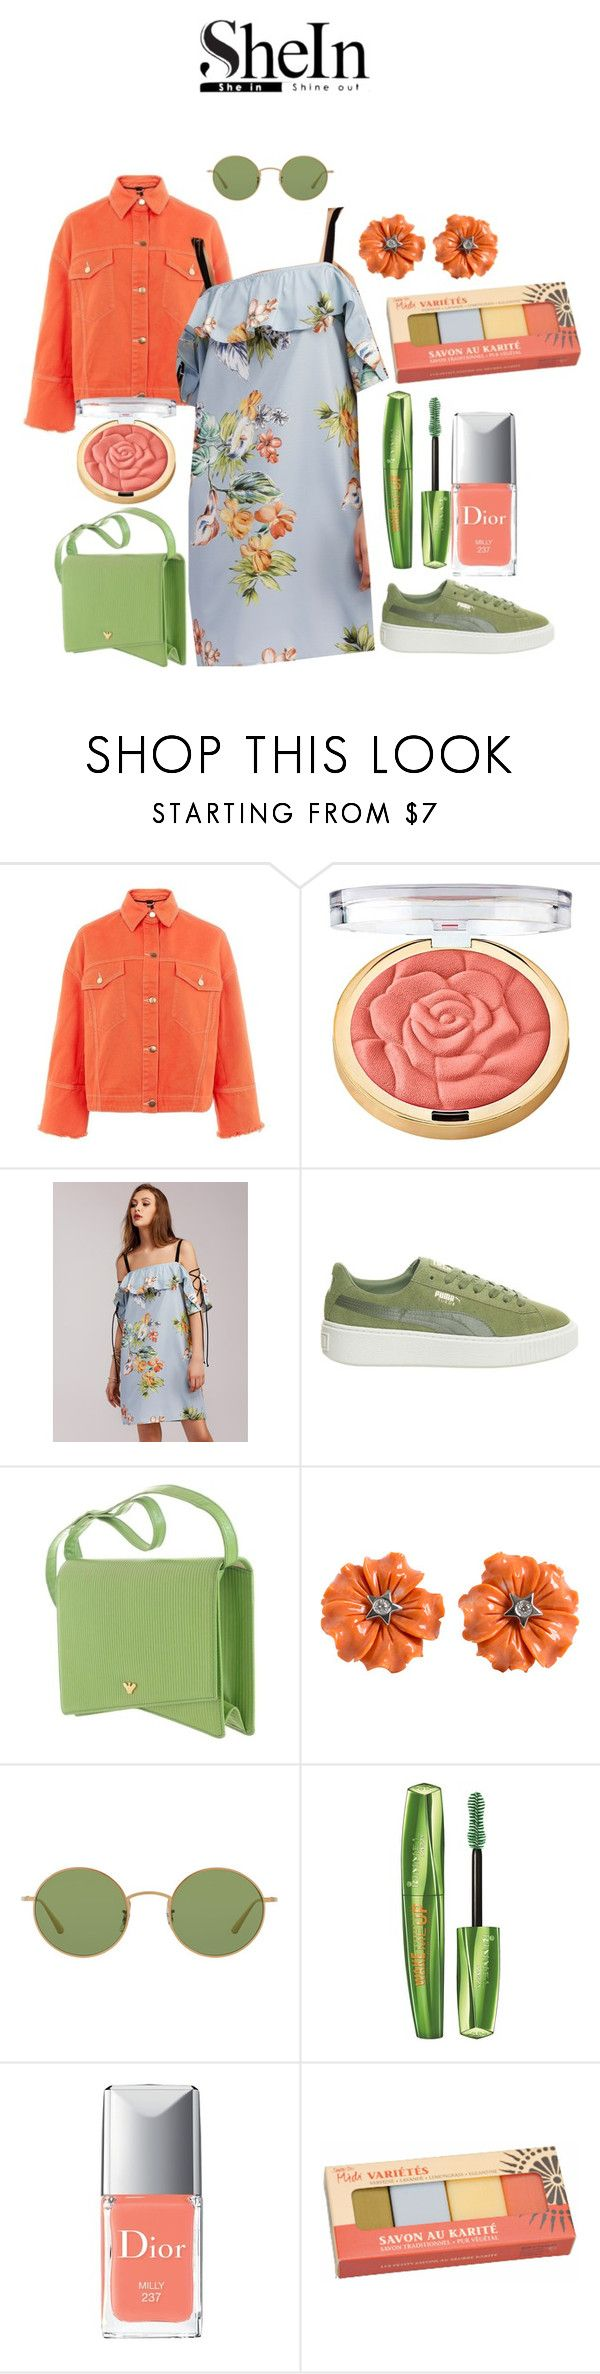 """Shein Love!"" by mrudula-26 ❤ liked on Polyvore featuring Topshop, Milani, Puma, Oliver Peoples, Rimmel, Christian Dior and Oxford Brush Company"